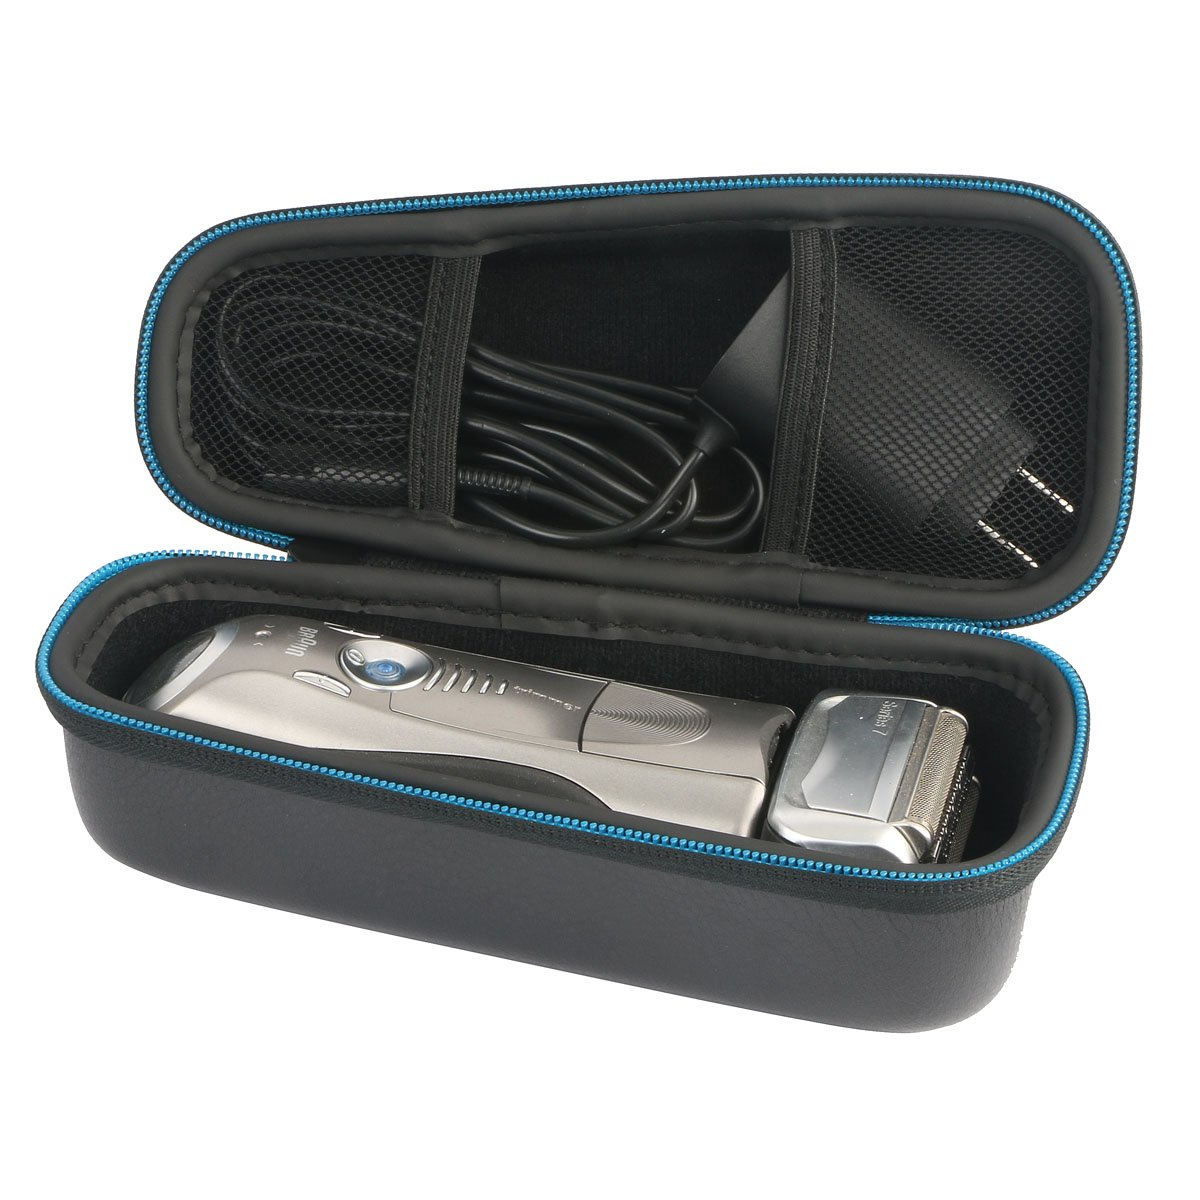 for Braun Series 5 7 790cc Electric Foil Shaver Travel Case by Baval